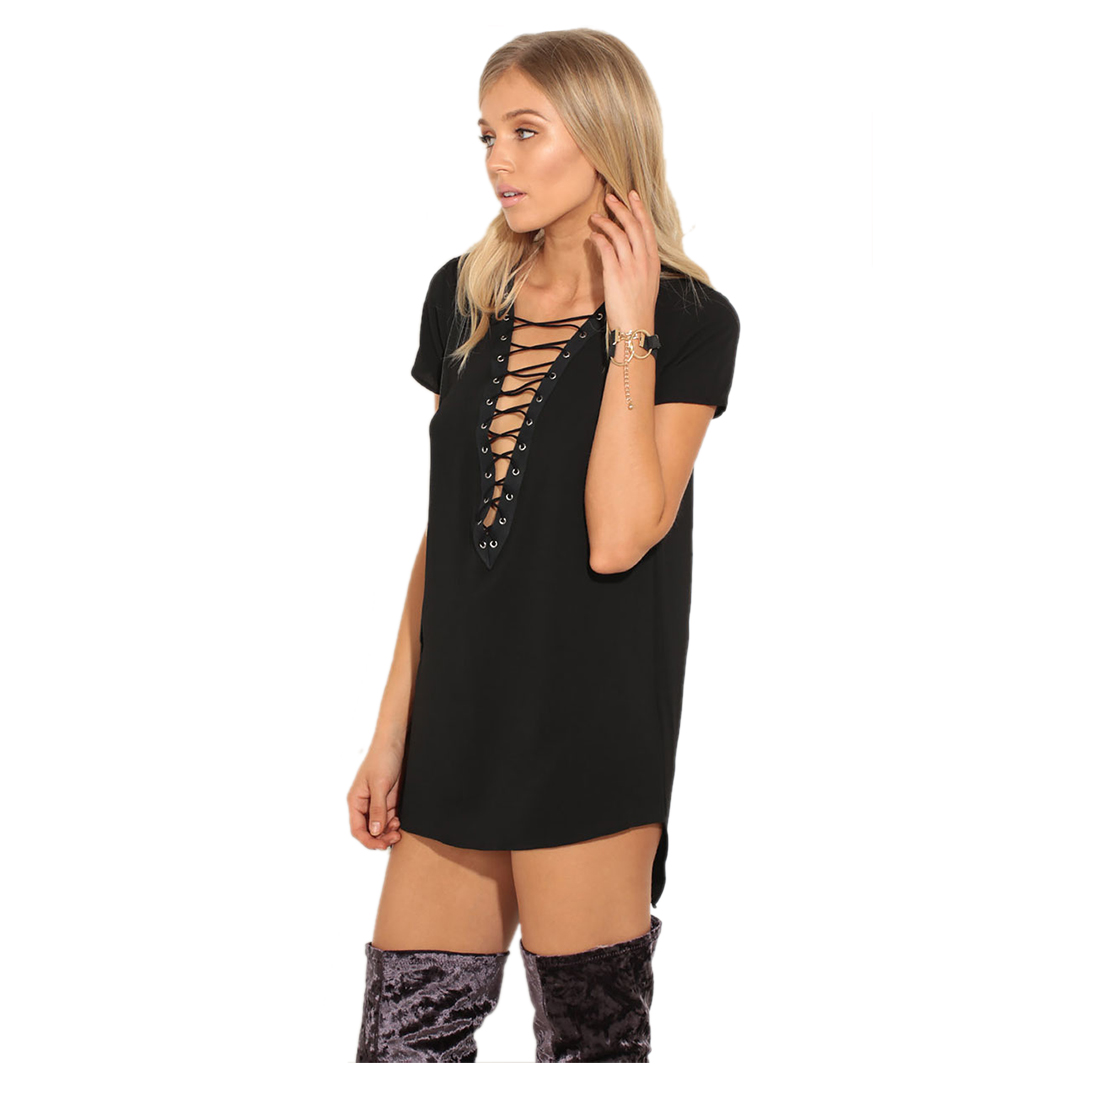 TFGS Women's Fashion <font><b>Summer</b></font> <font><b>T</b></font> <font><b>Shirt</b></font> Dress Deep <font><b>V</b></font> <font><b>Neck</b></font> Lace Up <font><b>Sexy</b></font> Bodycon <font><b>Bandage</b></font> Party Mini Dresses Casual Clubwear Dress image